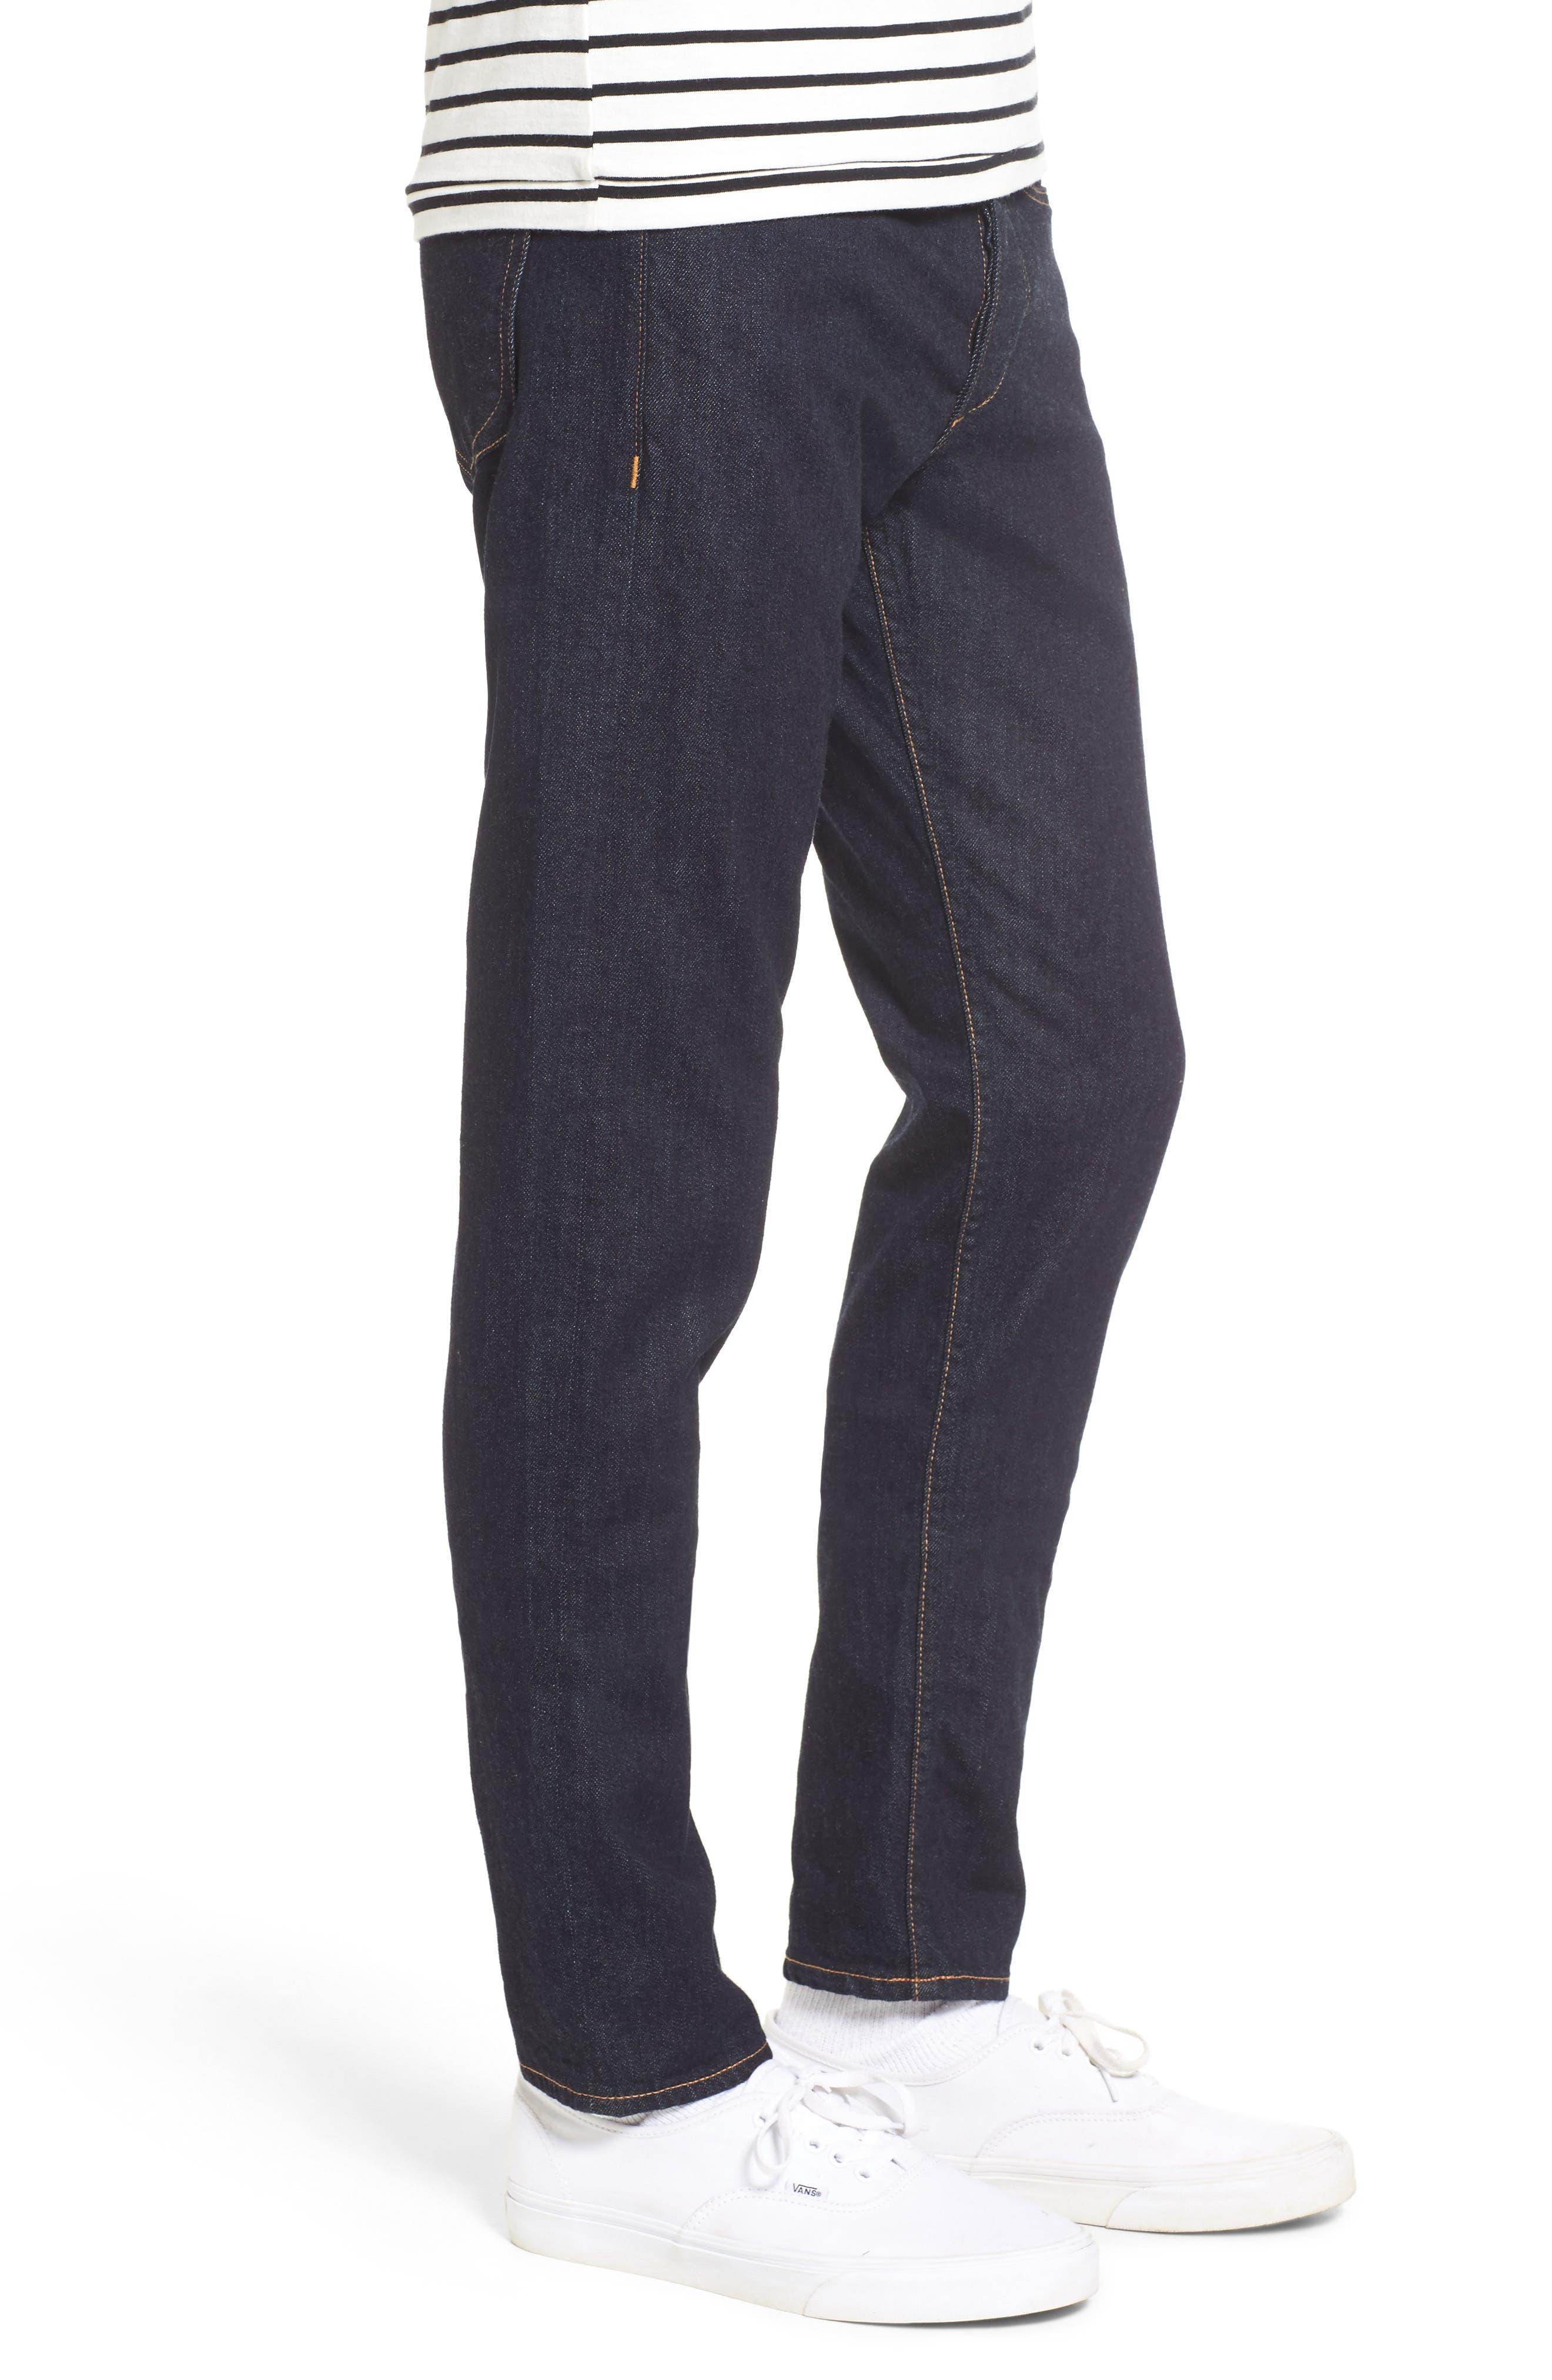 Standard Issue Fit 1 Skinny Fit Jeans,                             Alternate thumbnail 3, color,                             Rinse Selvage